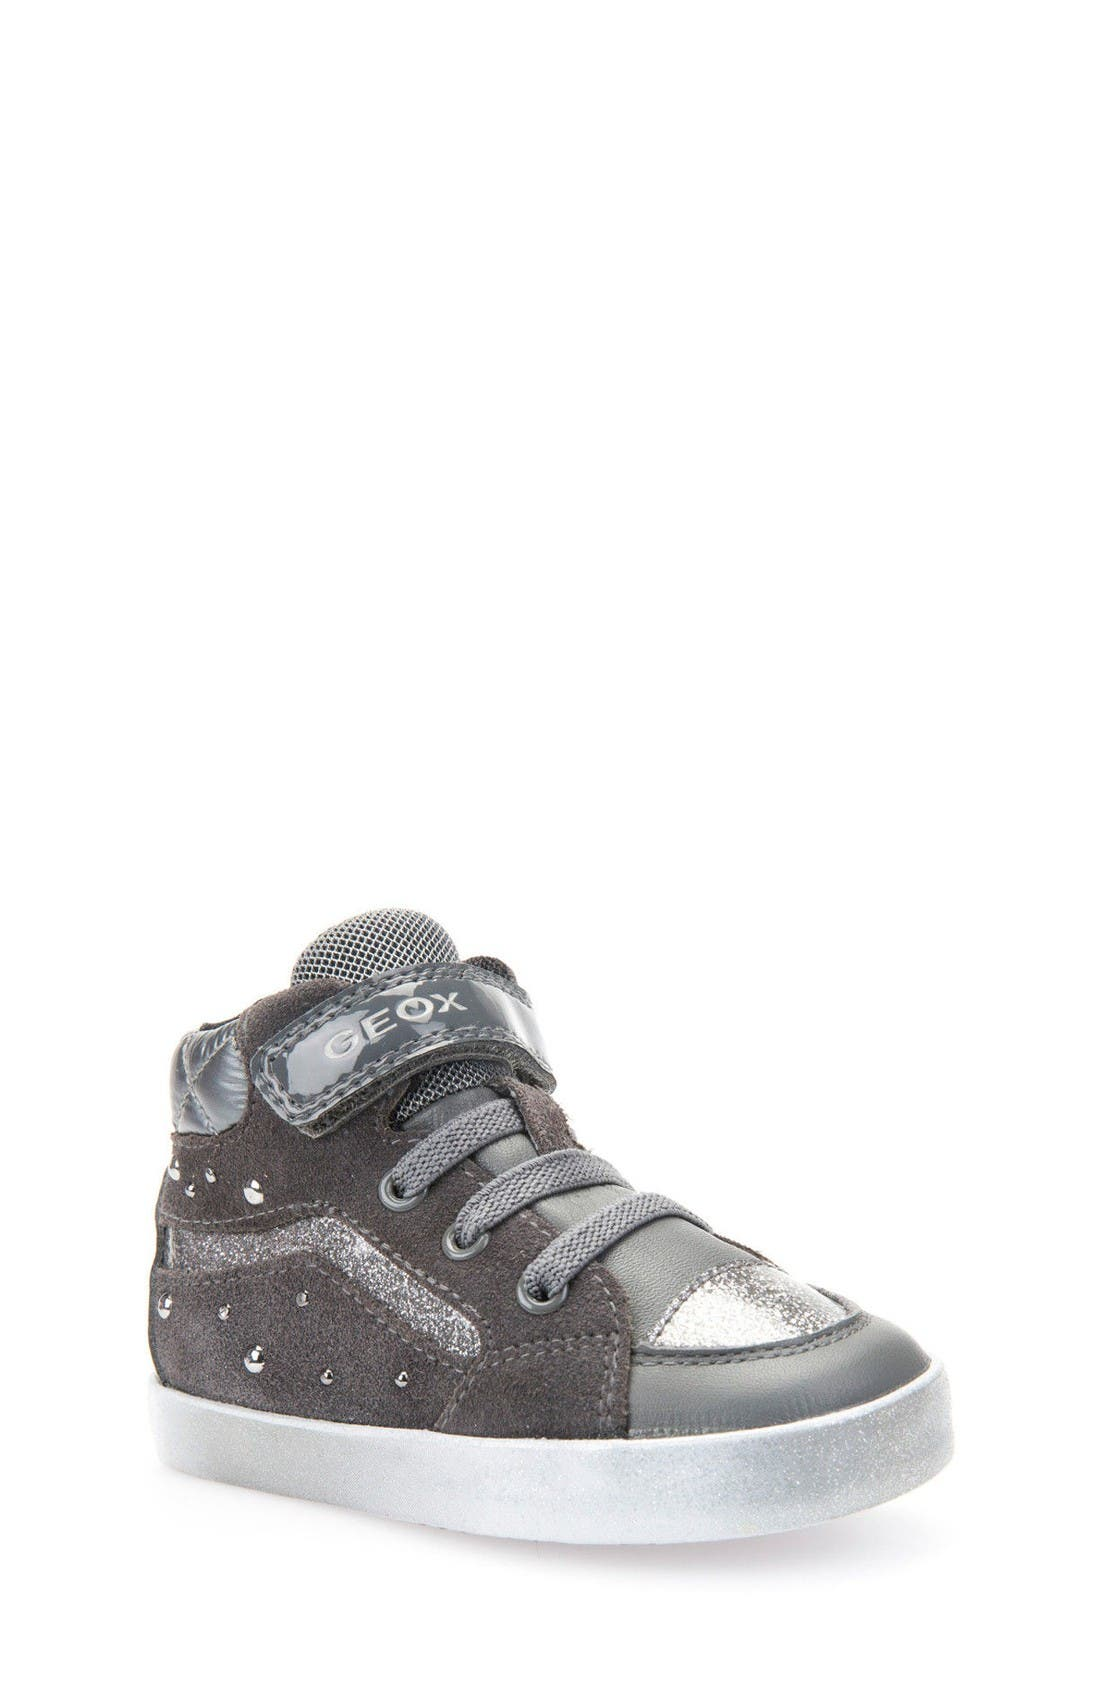 Main Image - Geox Kiwi Studded High Top Sneaker (Walker & Toddler)